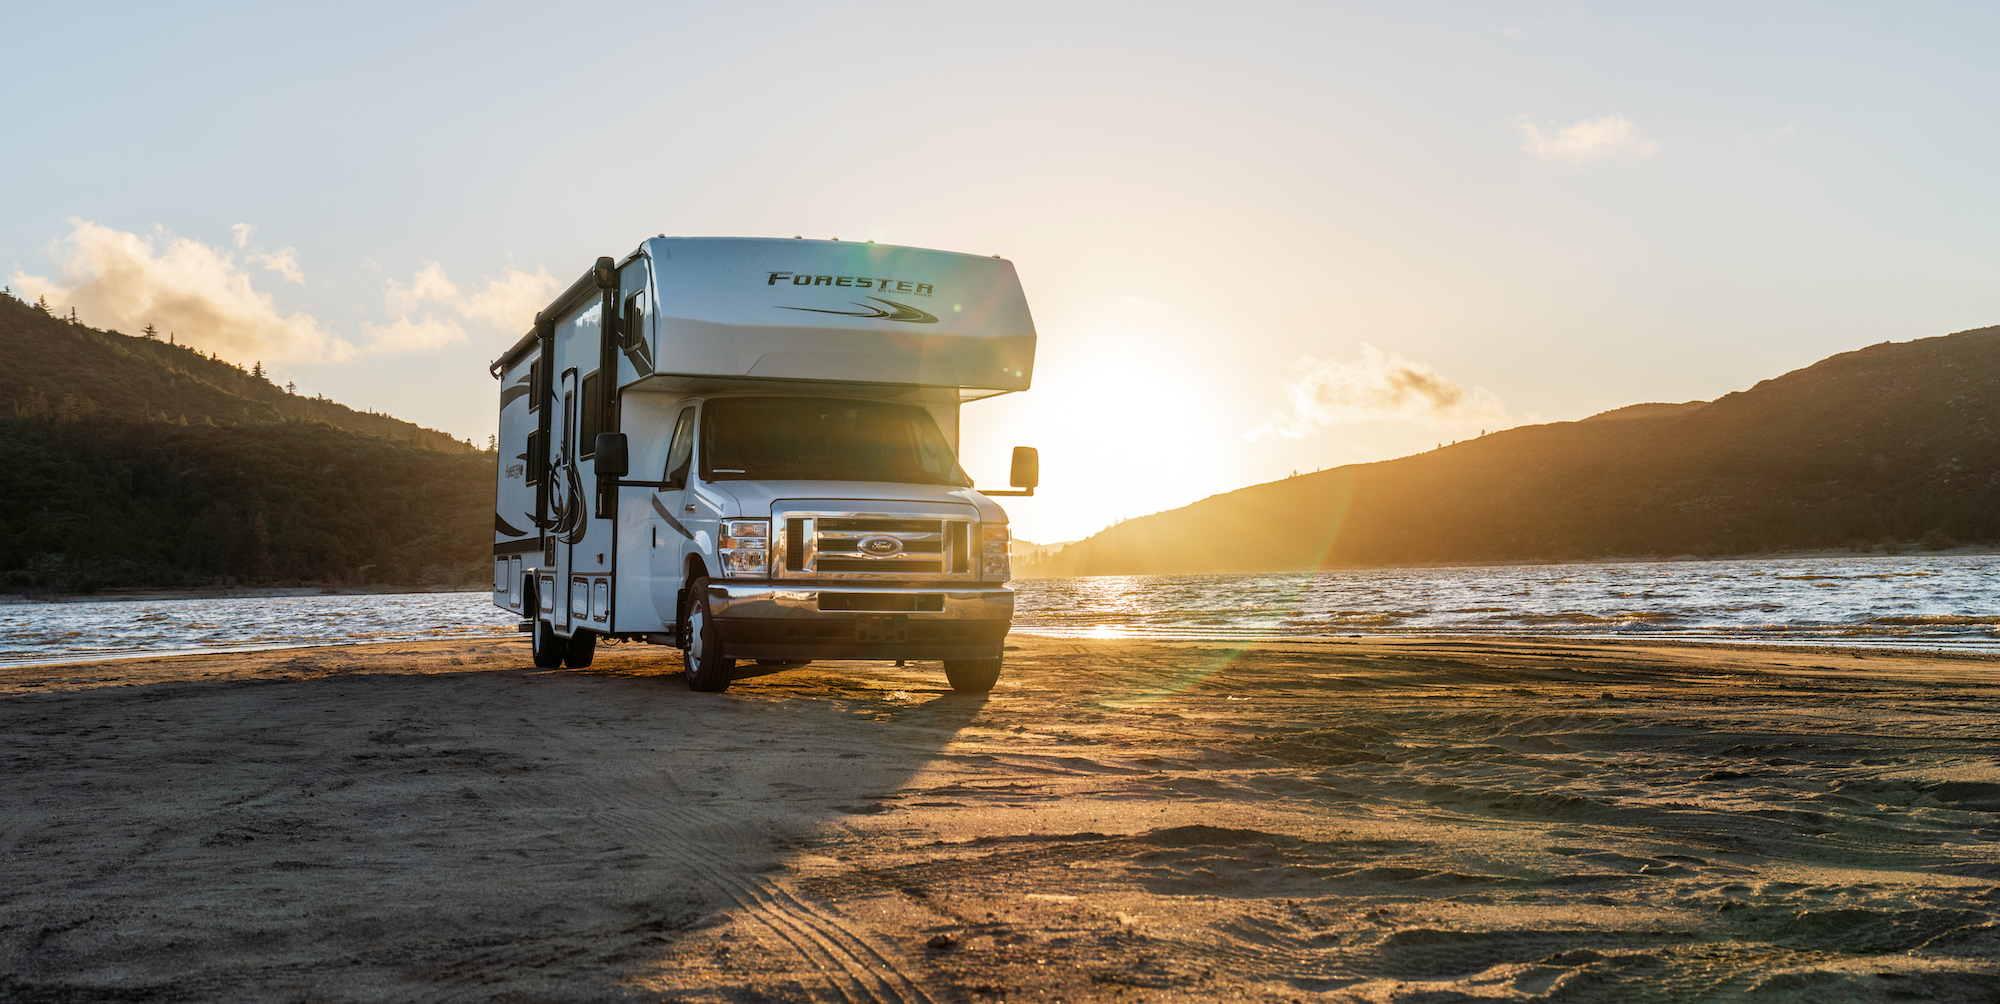 An RV with a Discover Battery battery